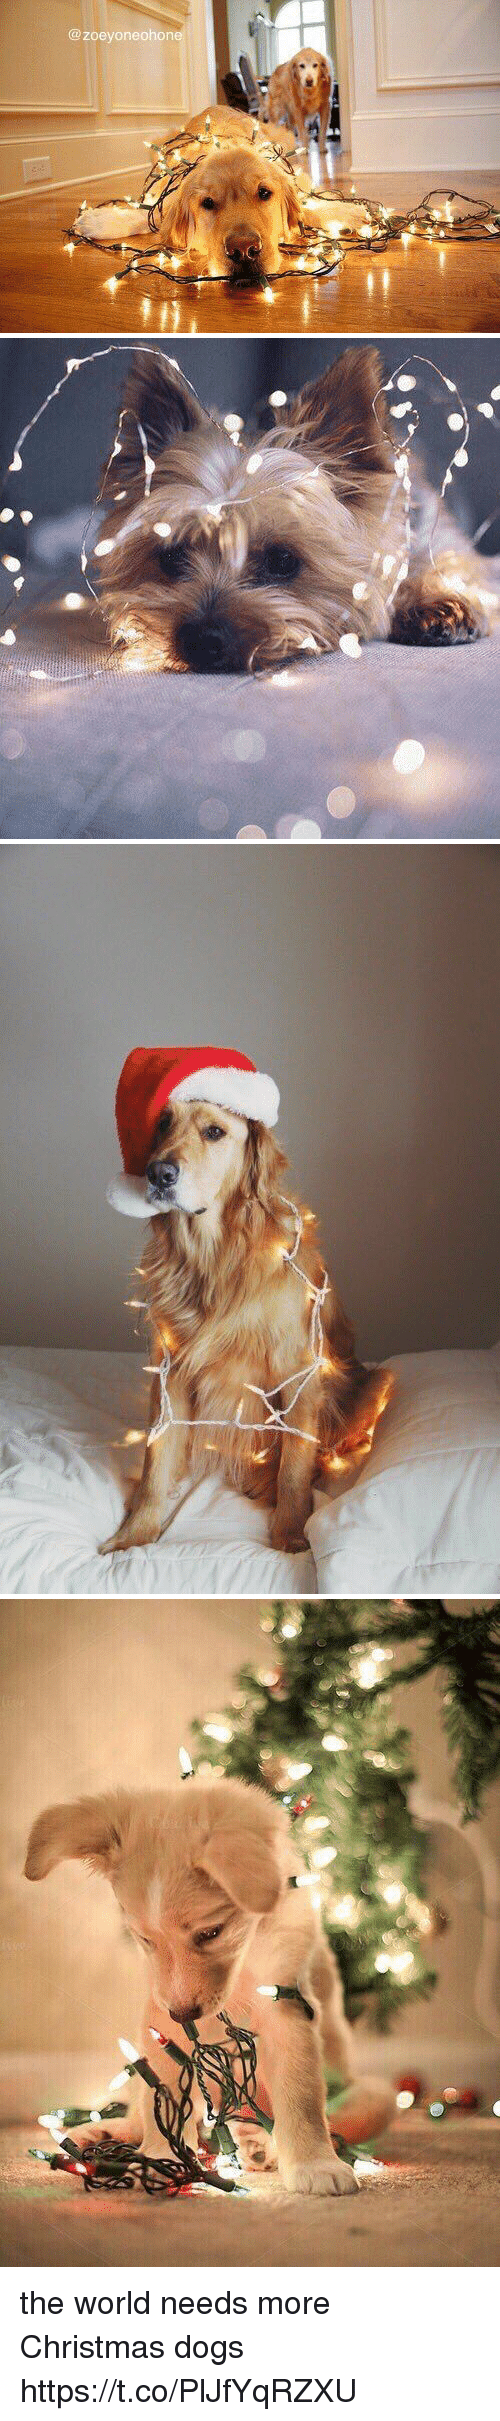 Christmas, Dogs, and World: @ zoeyoneohone the world needs more Christmas dogs https://t.co/PlJfYqRZXU